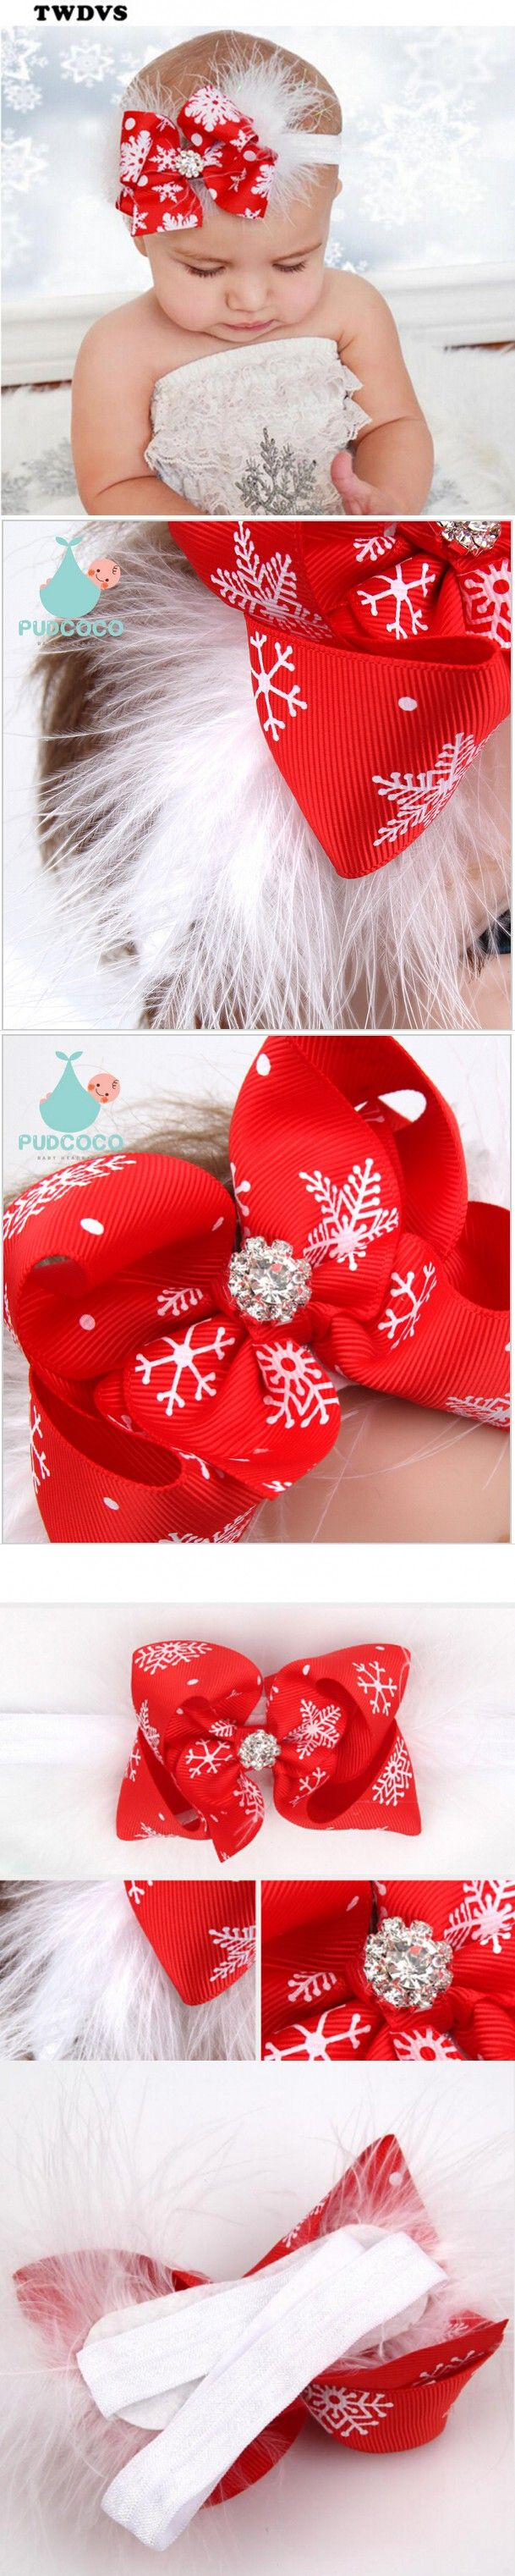 TWDVS Baby Girls Hair Bow Feather Headband Toddler Christmas Gift Kids Hair Bands Elastic Rhinestone Hair Accessories $1.65